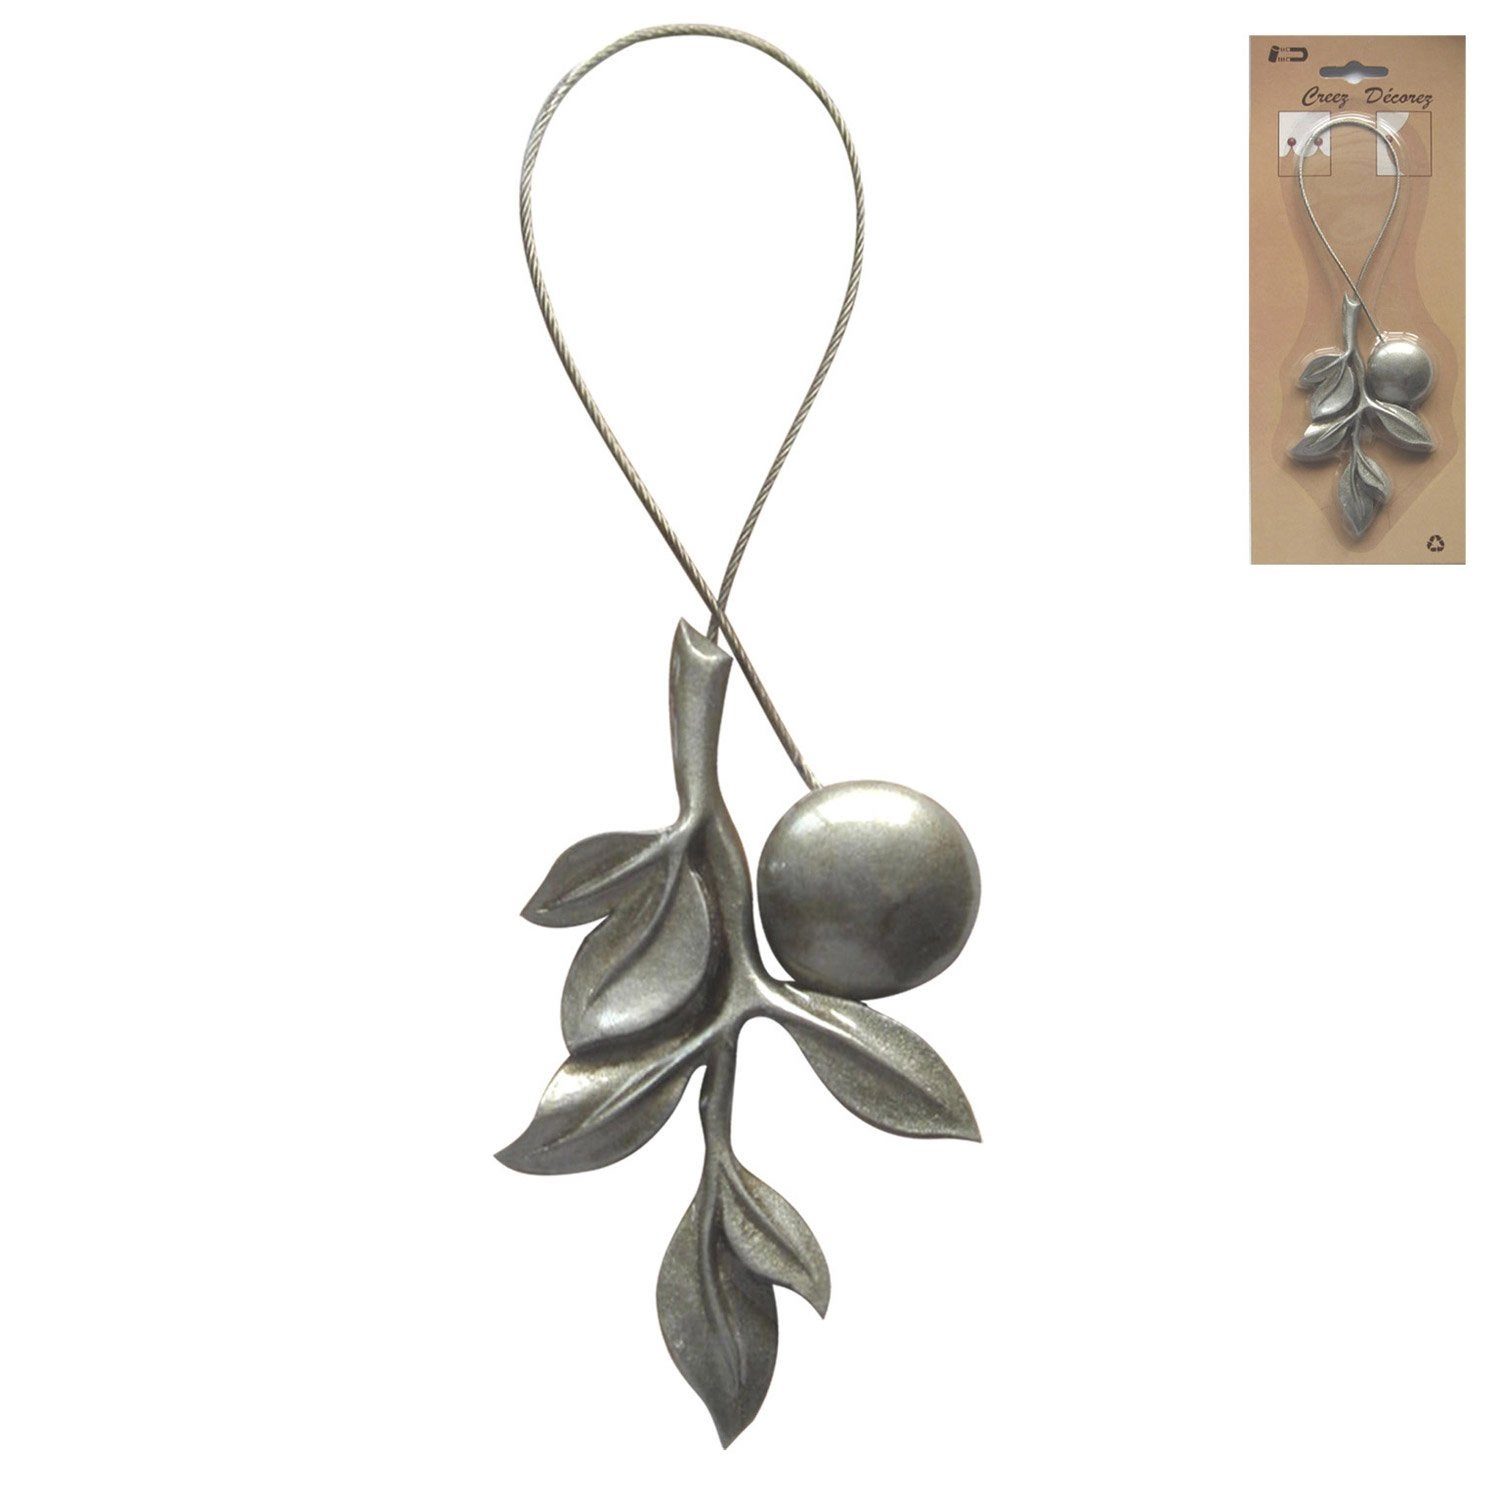 Embrasse aimant e branche argent leroy merlin - Embrasse rideau leroy merlin ...